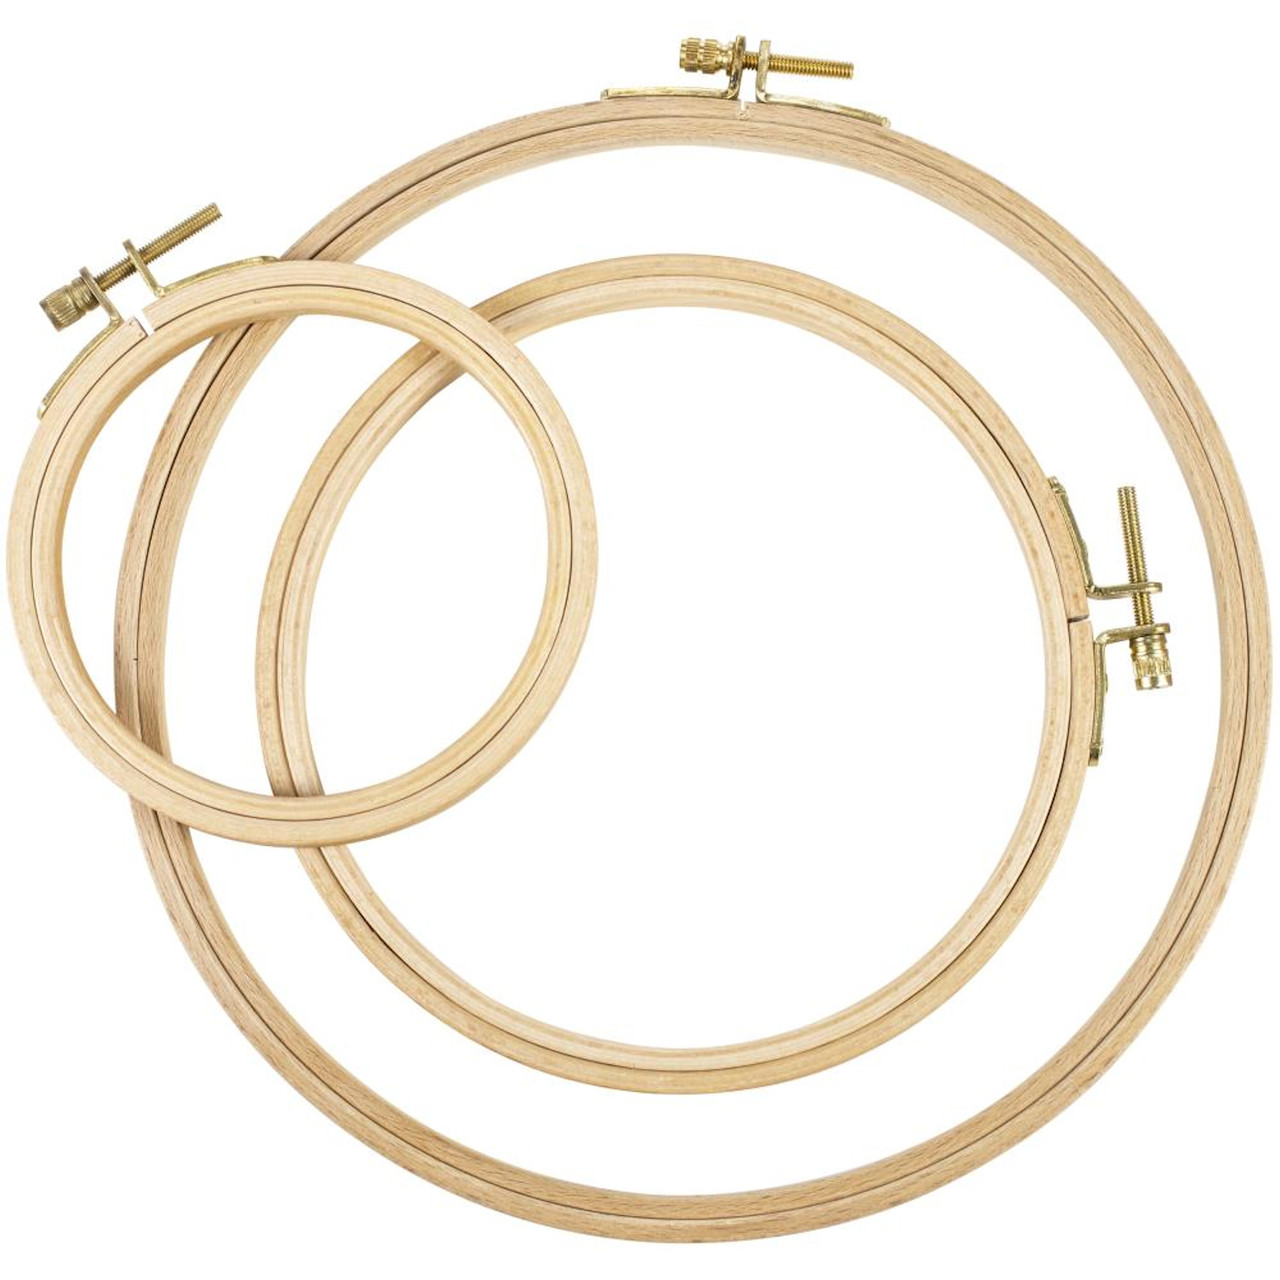 Frank A. Edmunds Beechwood Embroidery Hoop Set (3 Hoops)